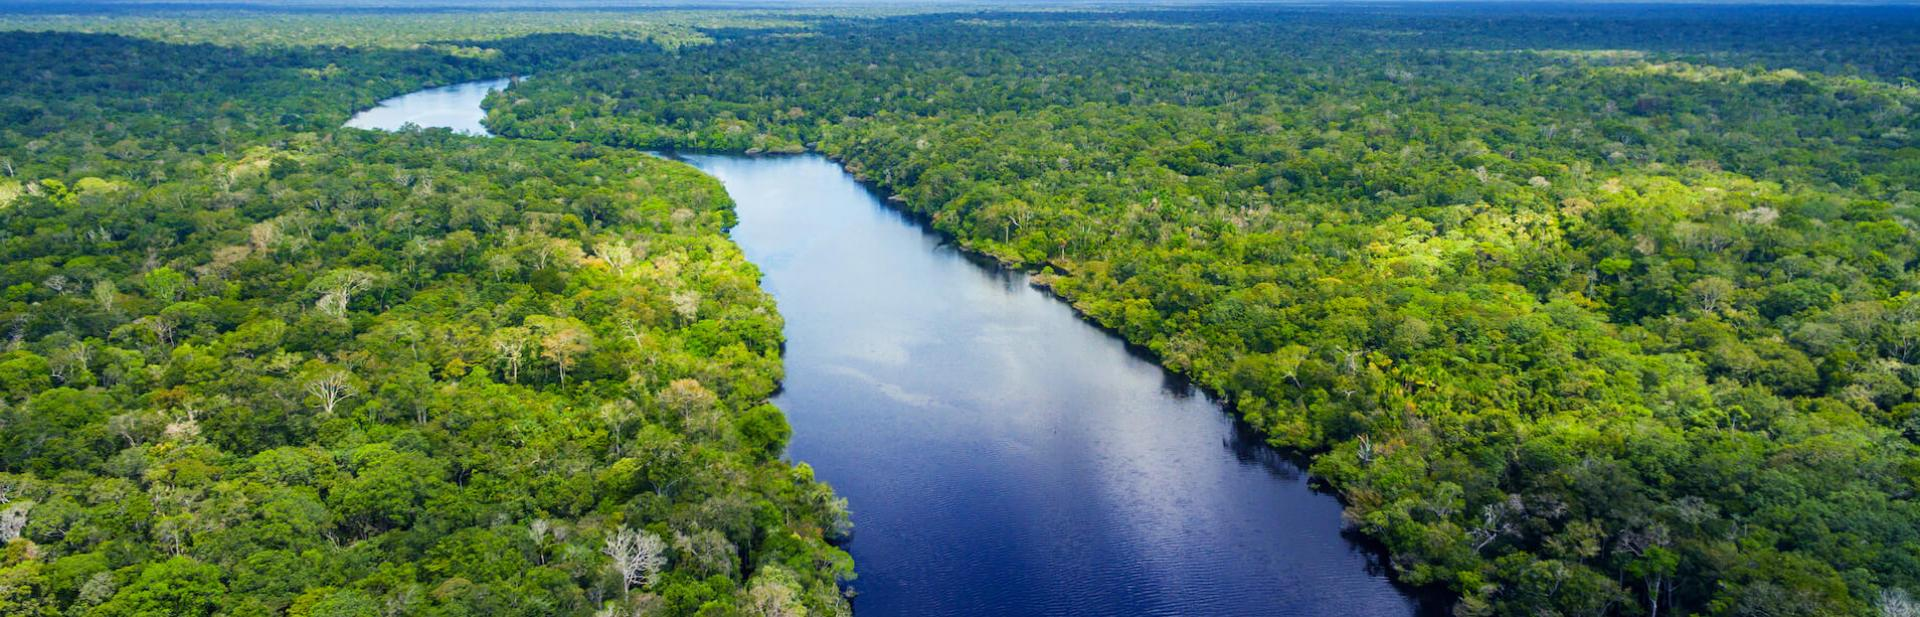 The Amazon river winding through a green forest, with a bright blue sky above it.